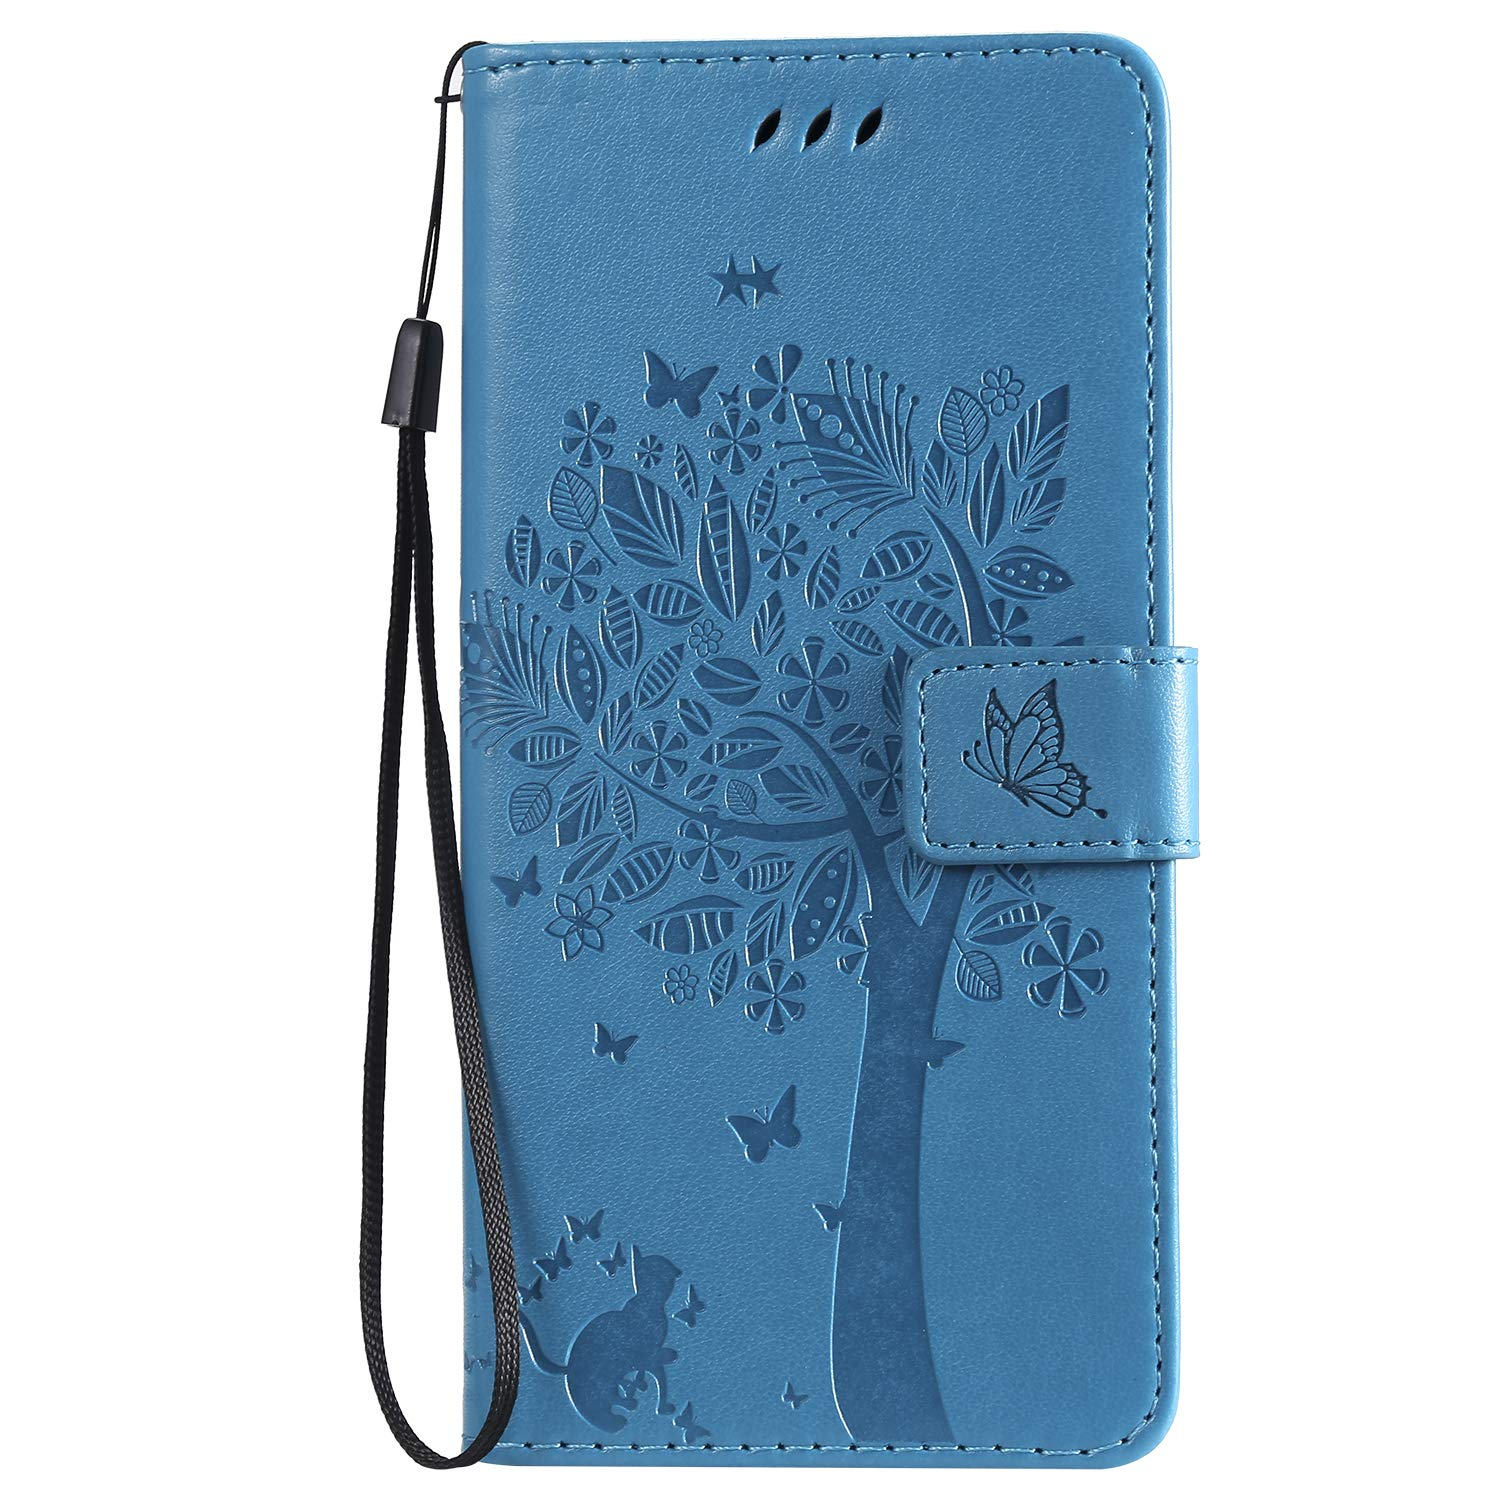 Lomogo Samsung Galaxy A20 A30 Case A30 LOKTU080021 Blue Leather Wallet Case with Kickstand Card Holder Shockproof Flip Case Cover for Samsung Galaxy A20